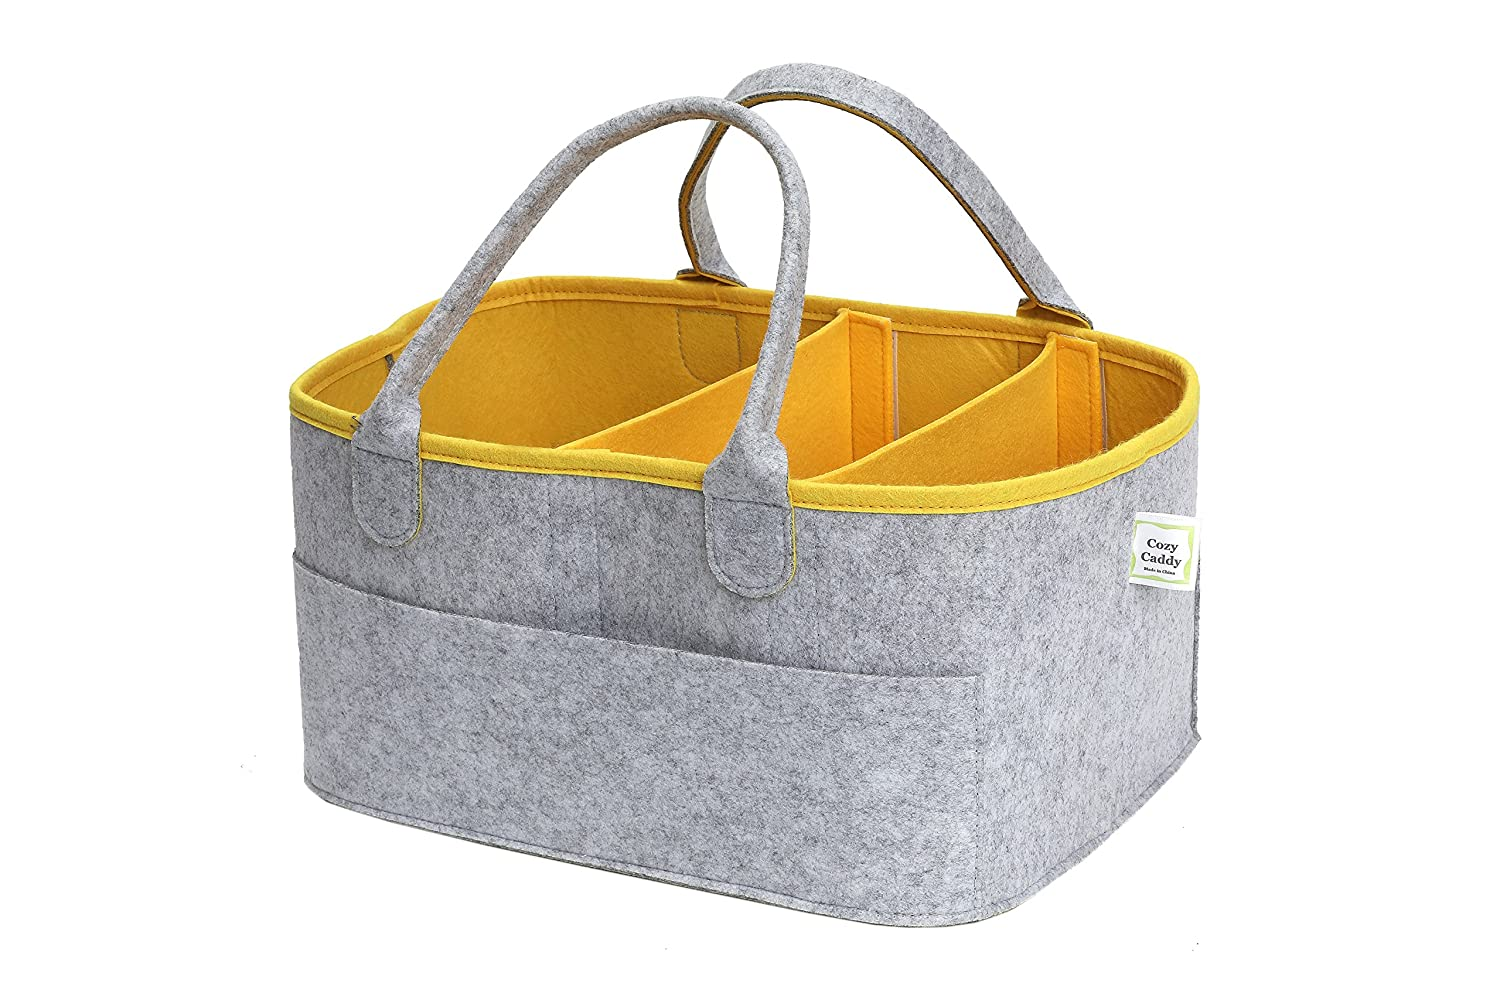 CozyCaddy Grey Nursery Diaper Organizer Caddy| Store Clothes, Teething Toys and More | Outdoors | Baby Shower Gift | 14 X 10 X 7 Larger Sturdy Bottom | Eco Friendly Durable Felt Unlokt